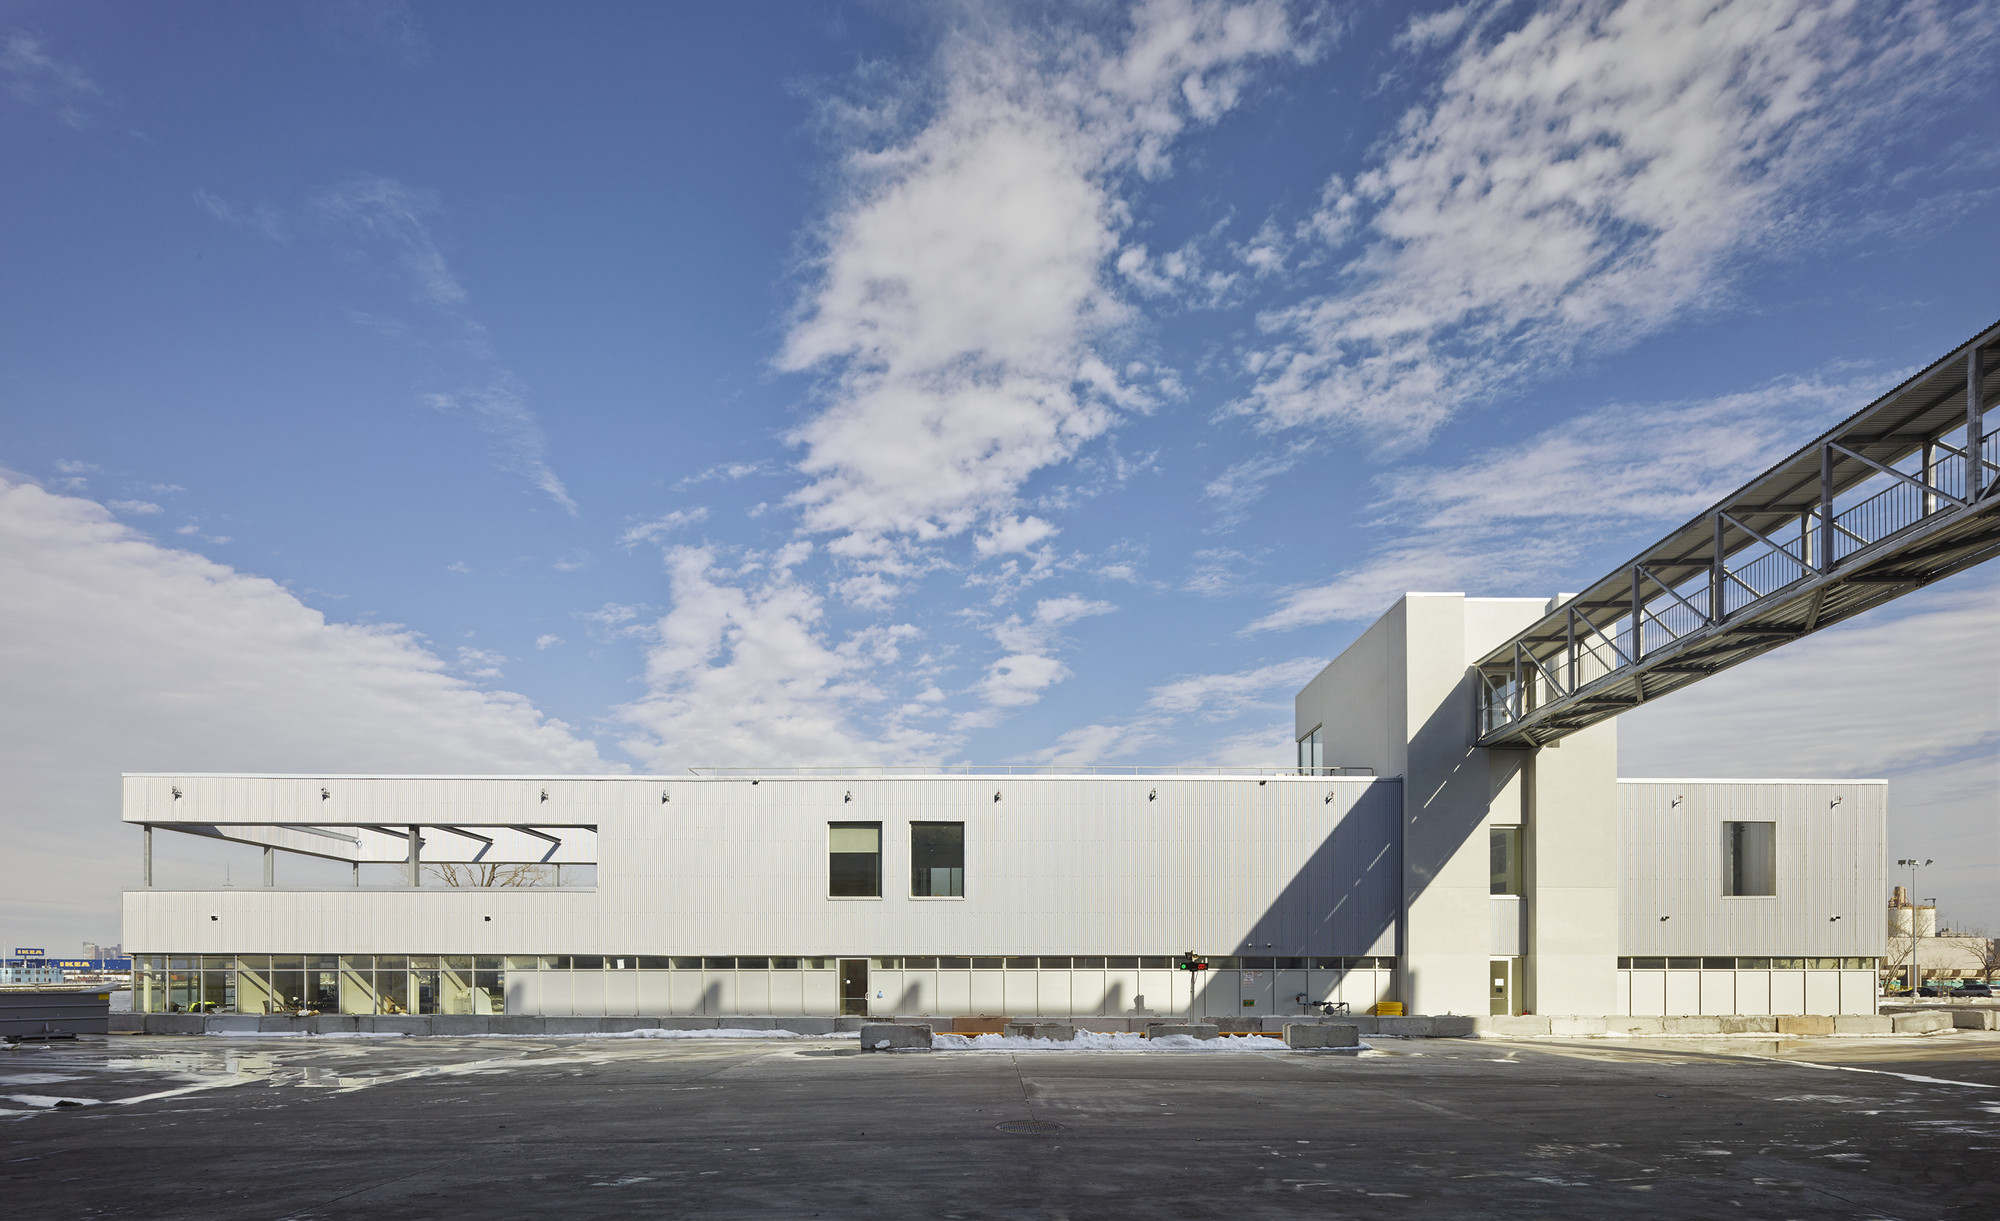 Sunset Park Material Recovery Facility / Selldorf Architects, © Nikolas Koenig